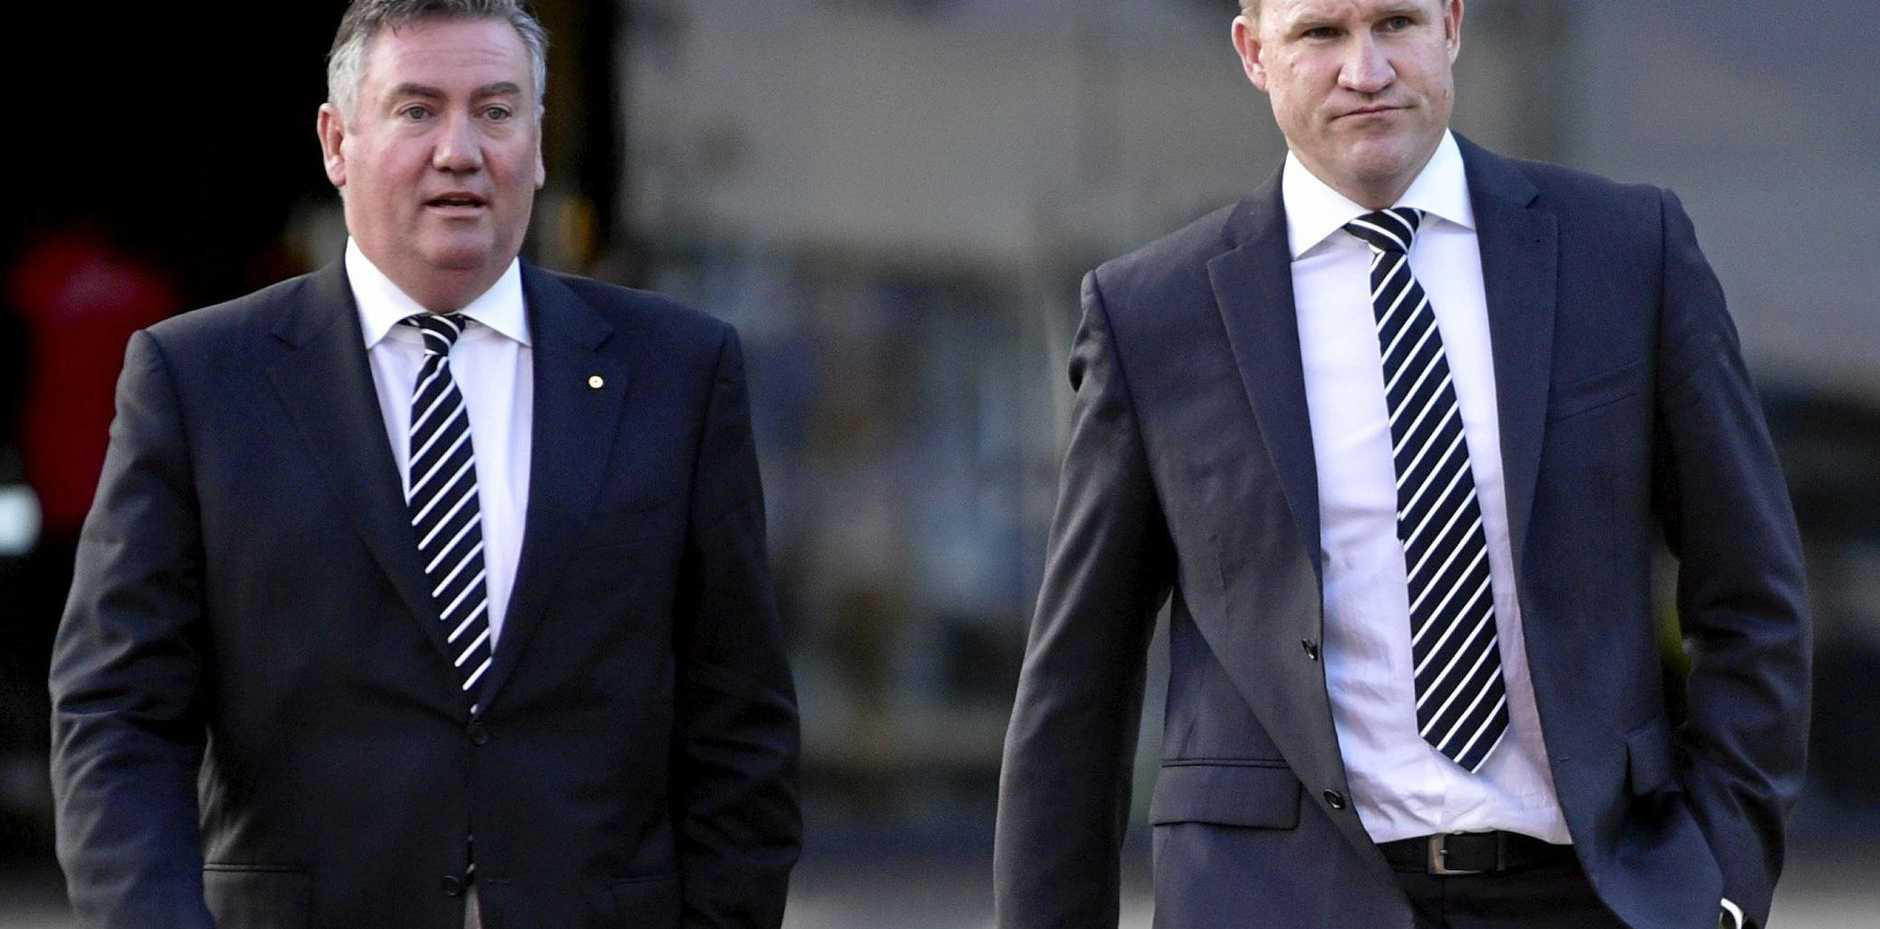 Collingwood president Eddie McGuire and Collingwood coach Nathan Buckley